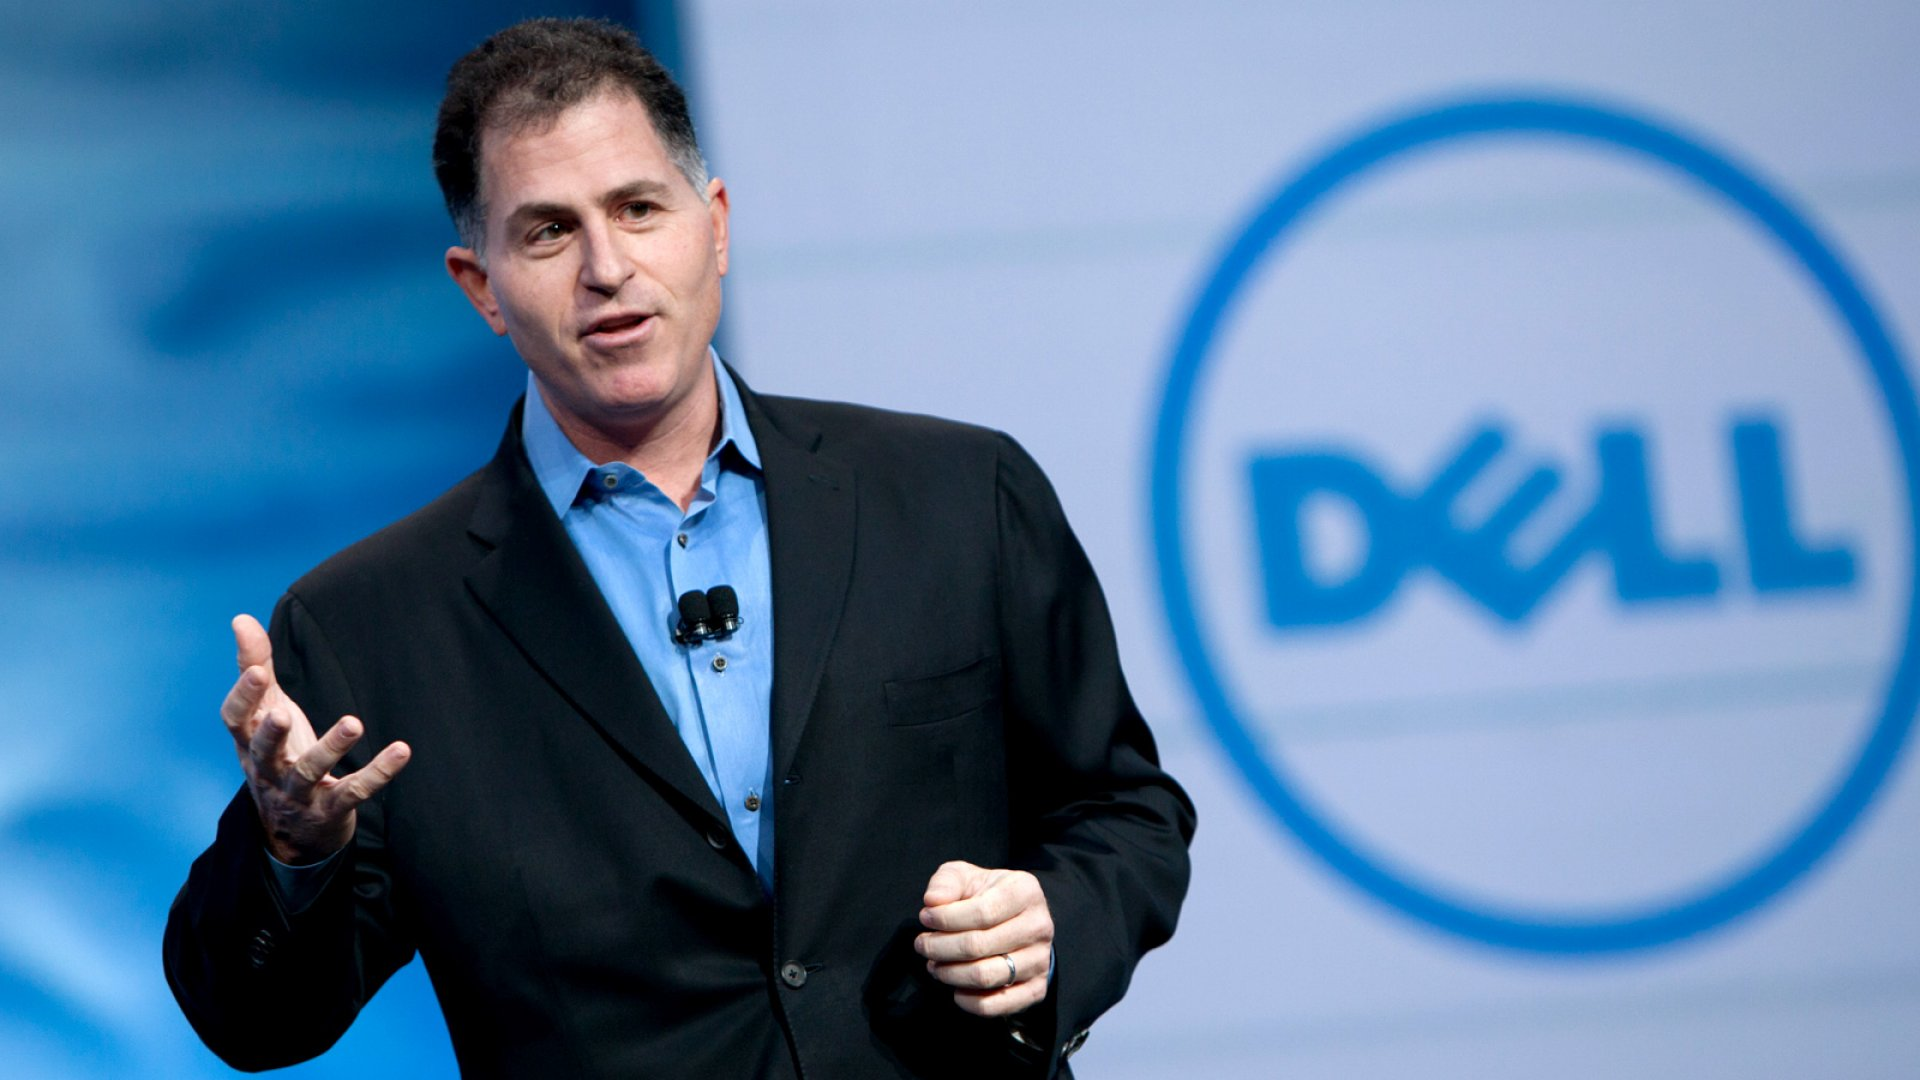 Michael Dell's Must-Read Business Books Right Now